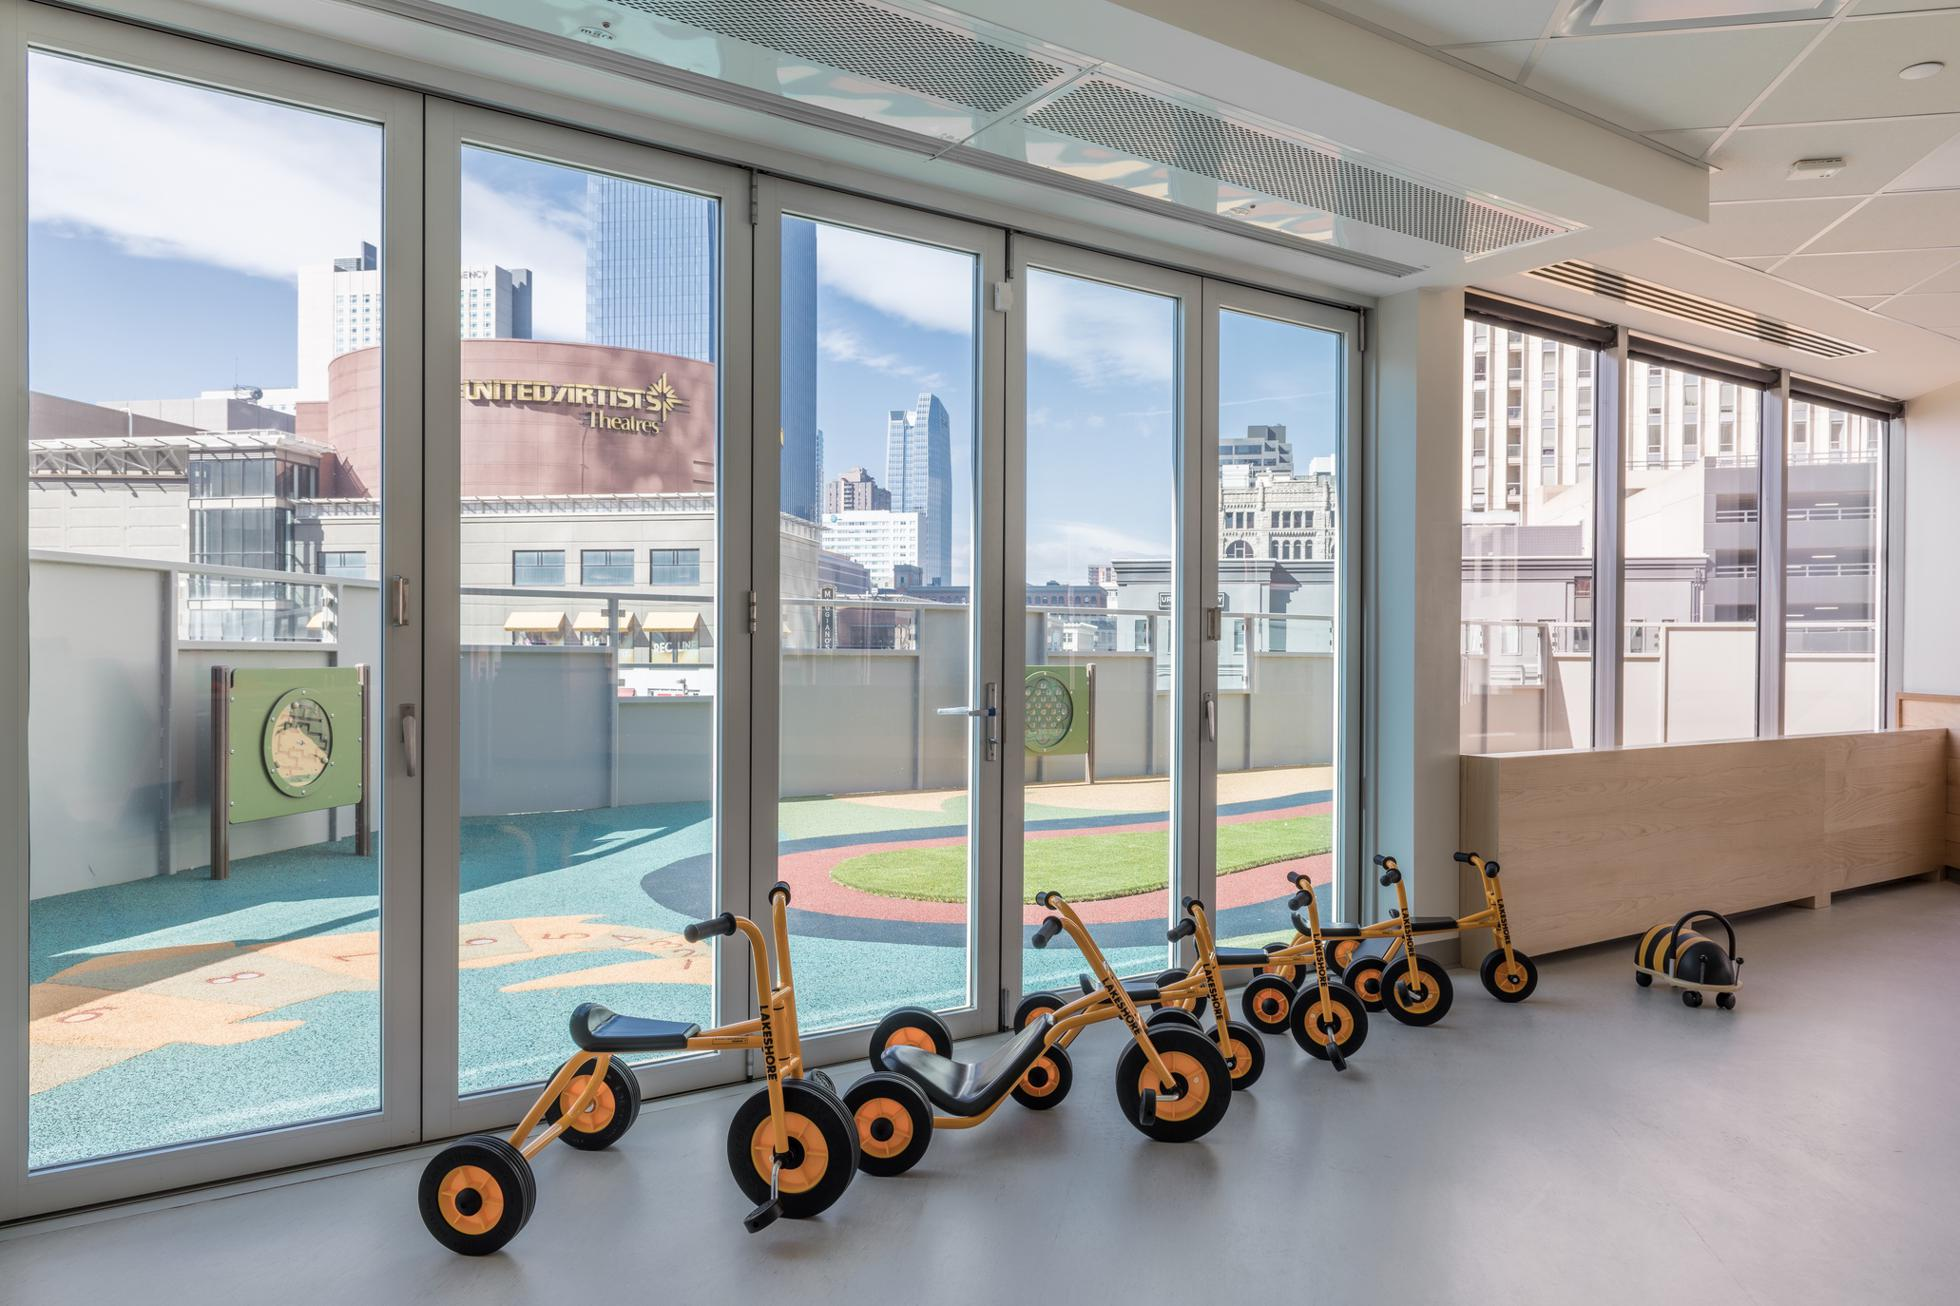 Tricycles of different sizes sit in front of glass doors that lead to an outdoor play area.